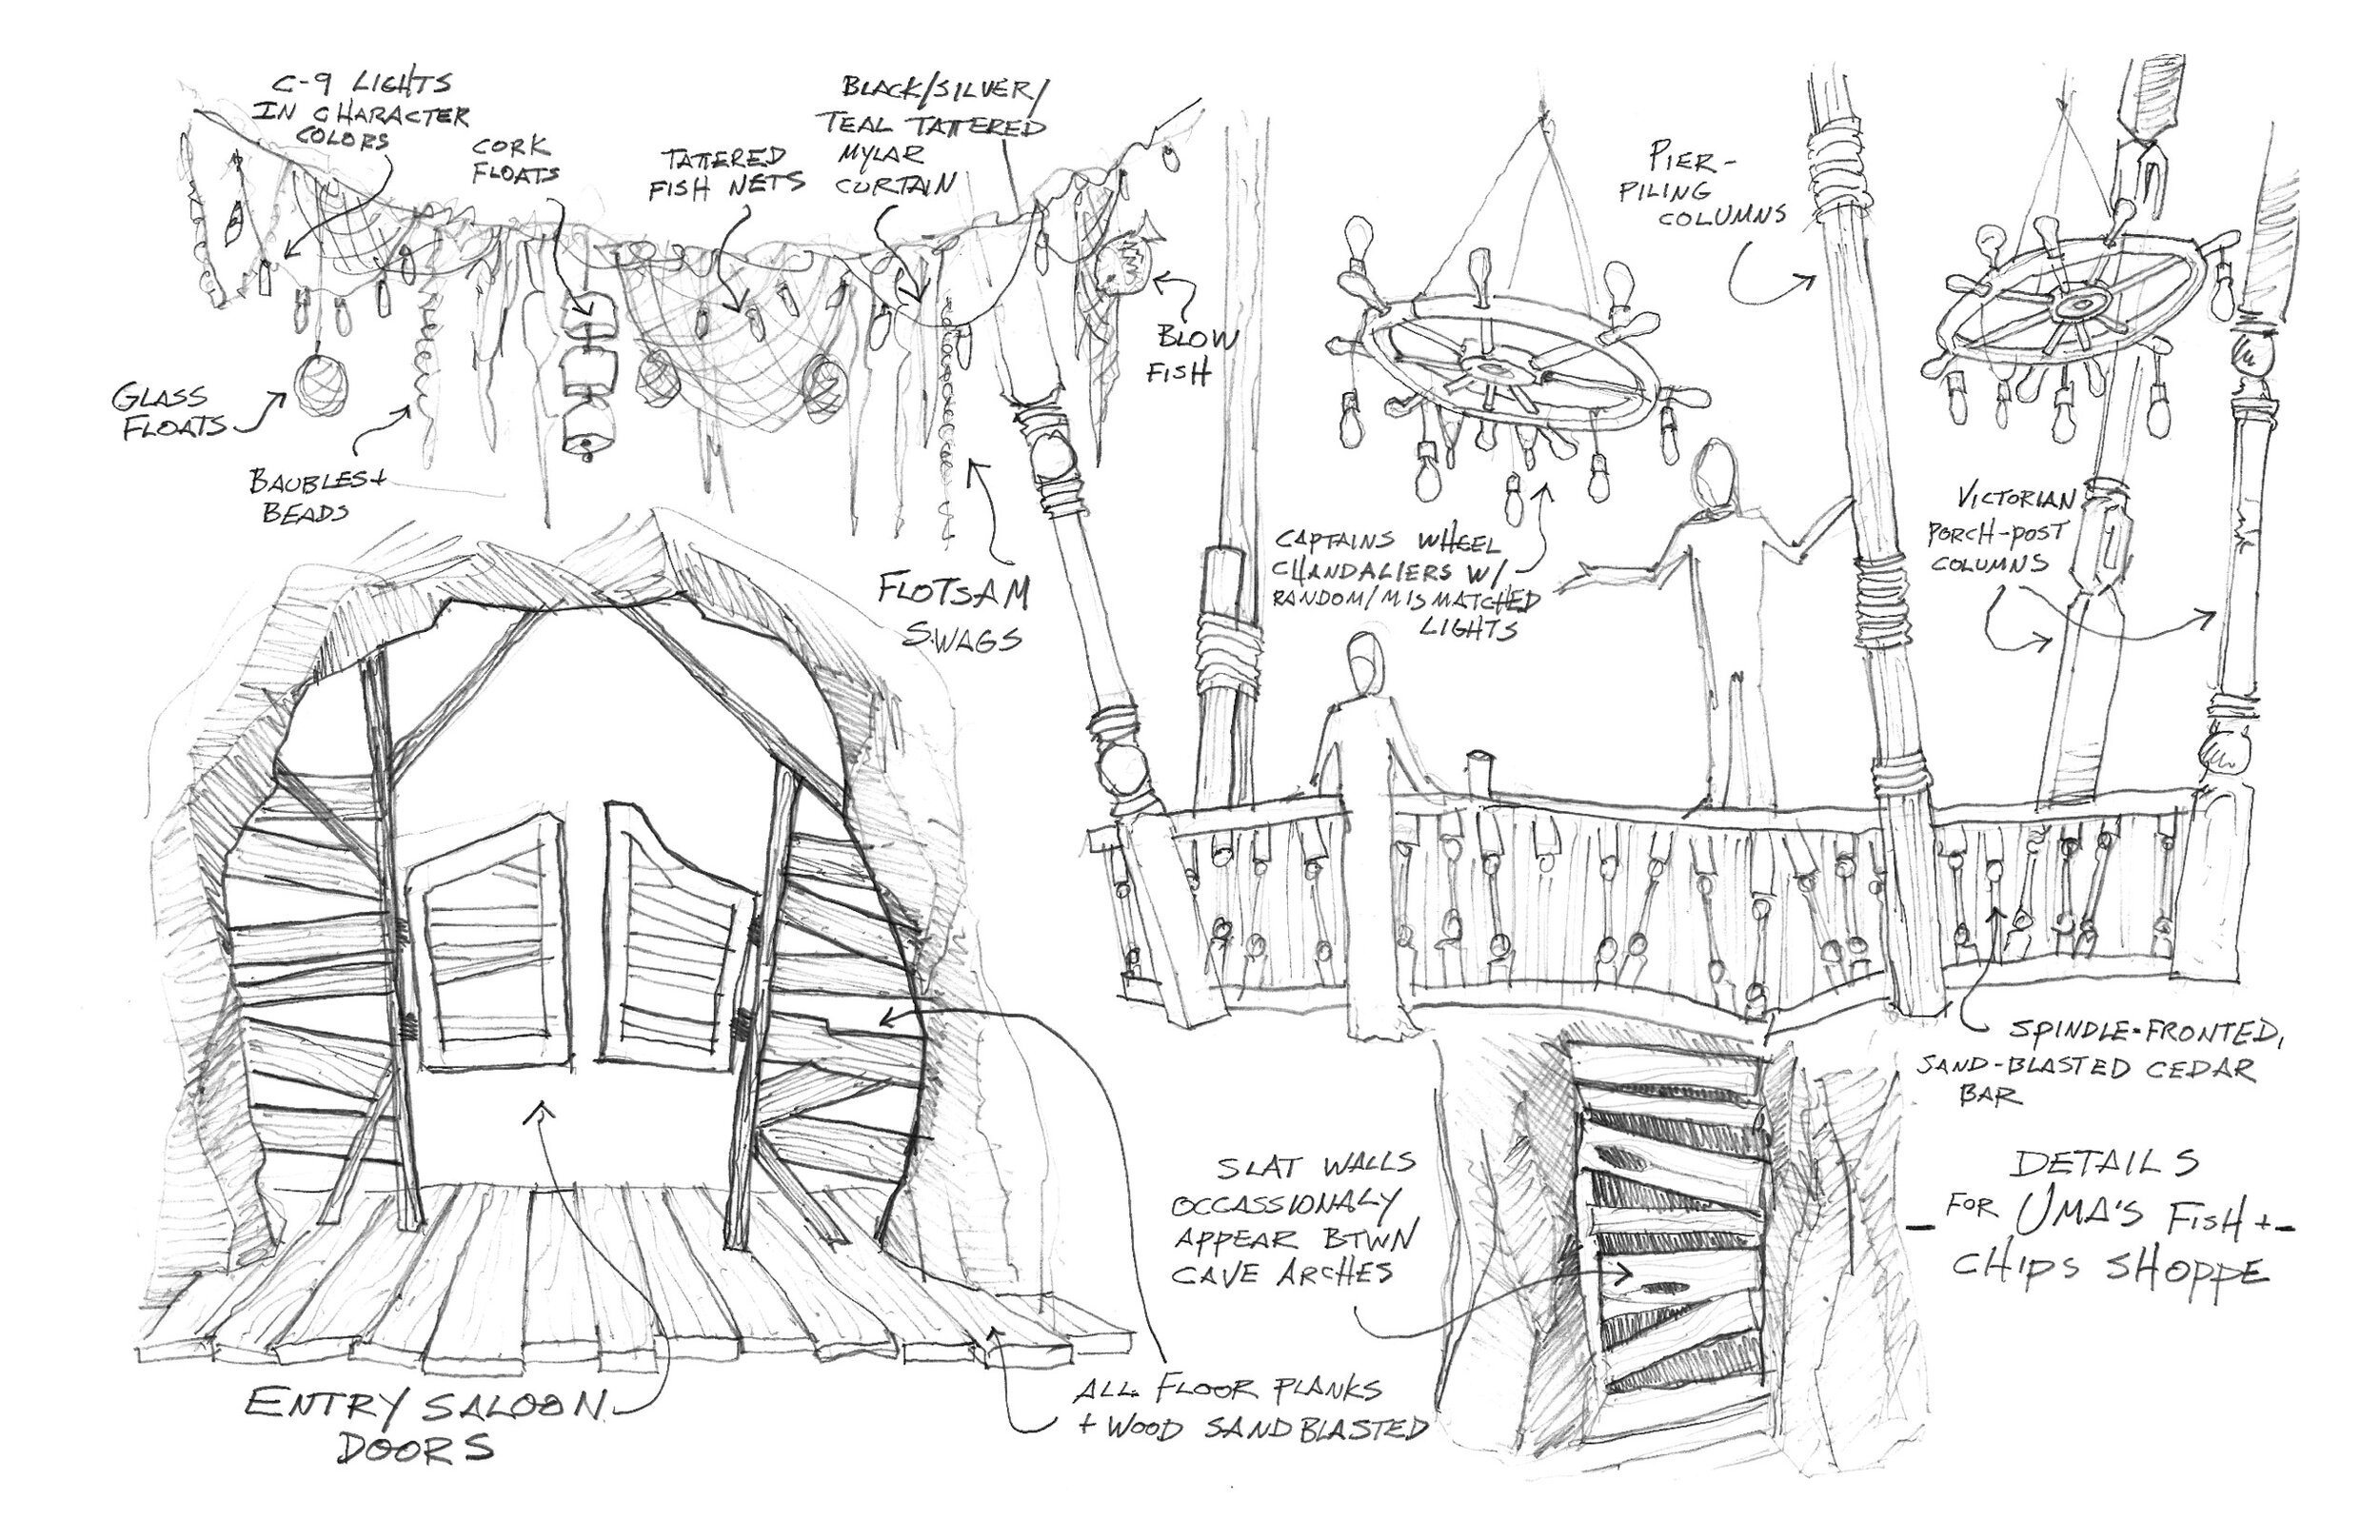 On Disney's Descendants 2, the Mighty sea witch Ursula has been reduced to selling fish and chips in a dank tidal cave. This is a sketch of the various furnishings in her grim restaurant.